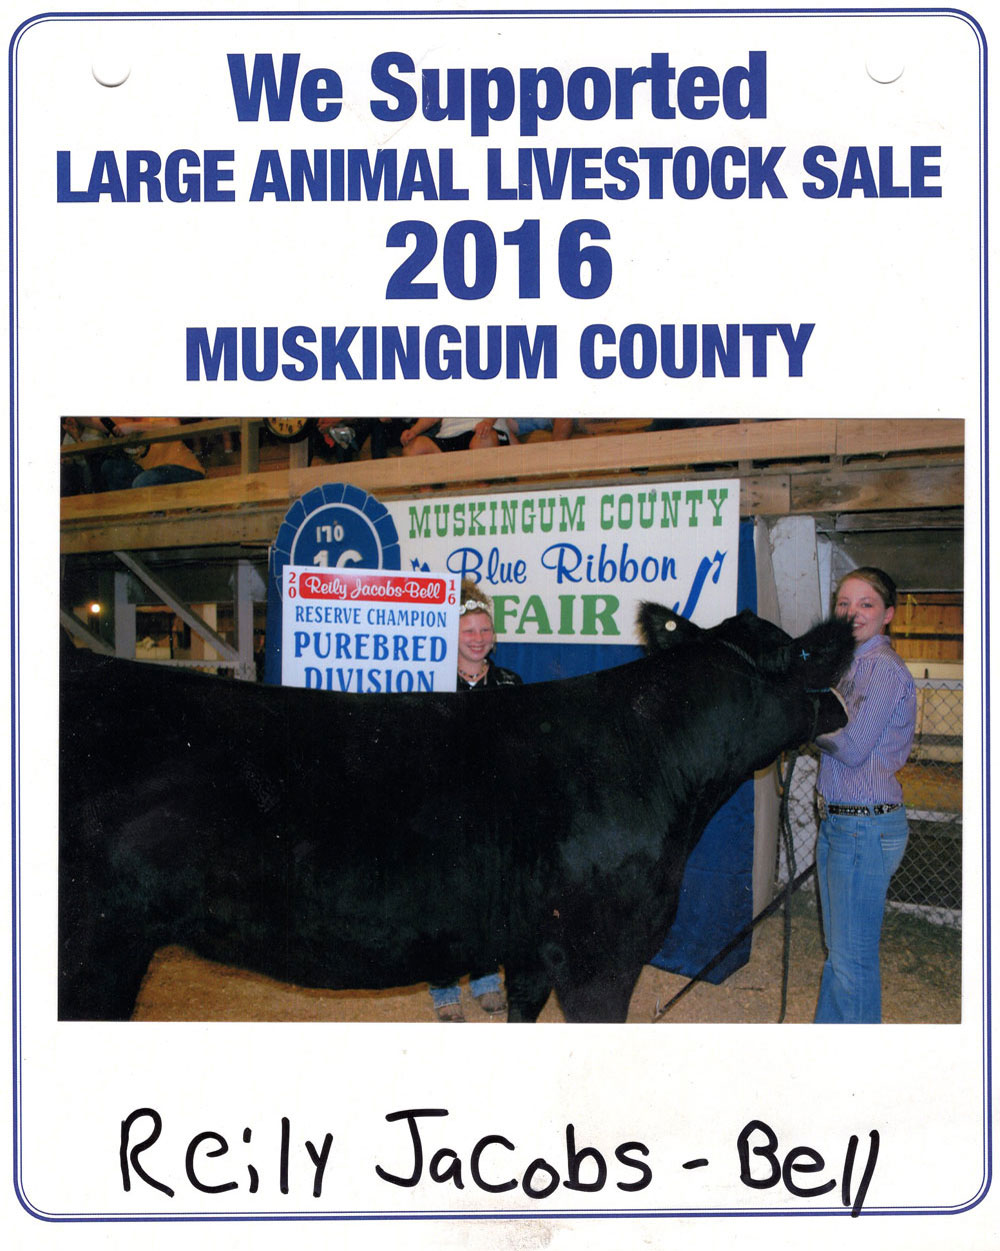 Ohio muskingum county norwich - Zemba Bros Community Support Muskingum County Fair Live Stock Auction 2